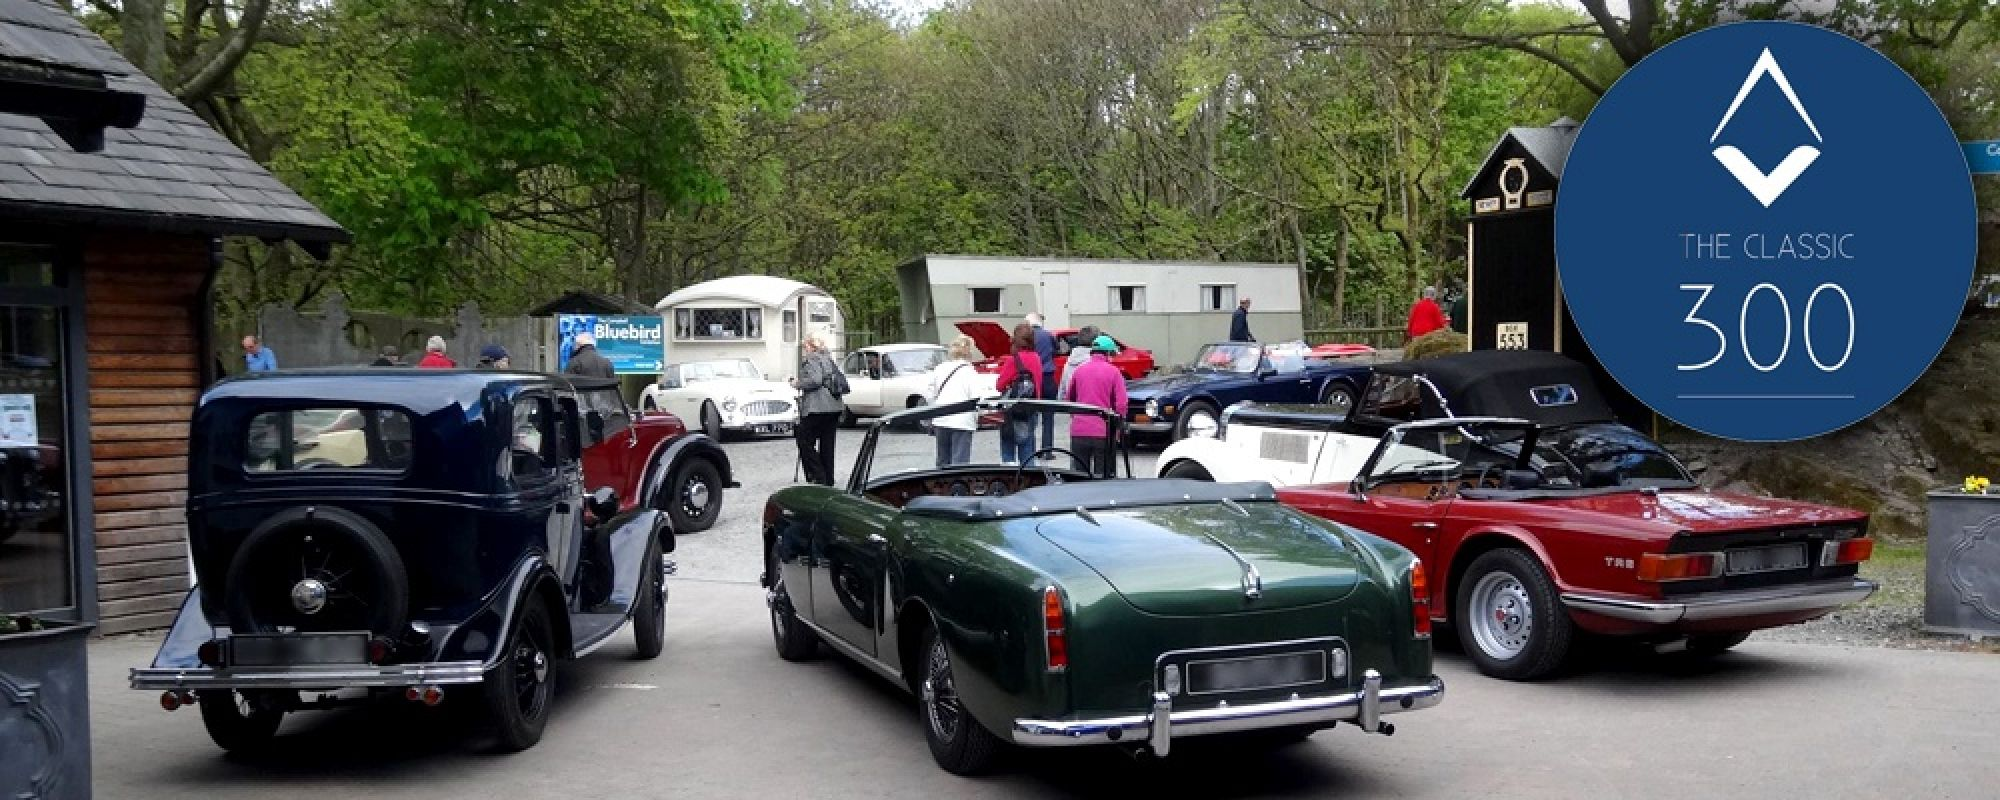 Classic cars on display outside the museum